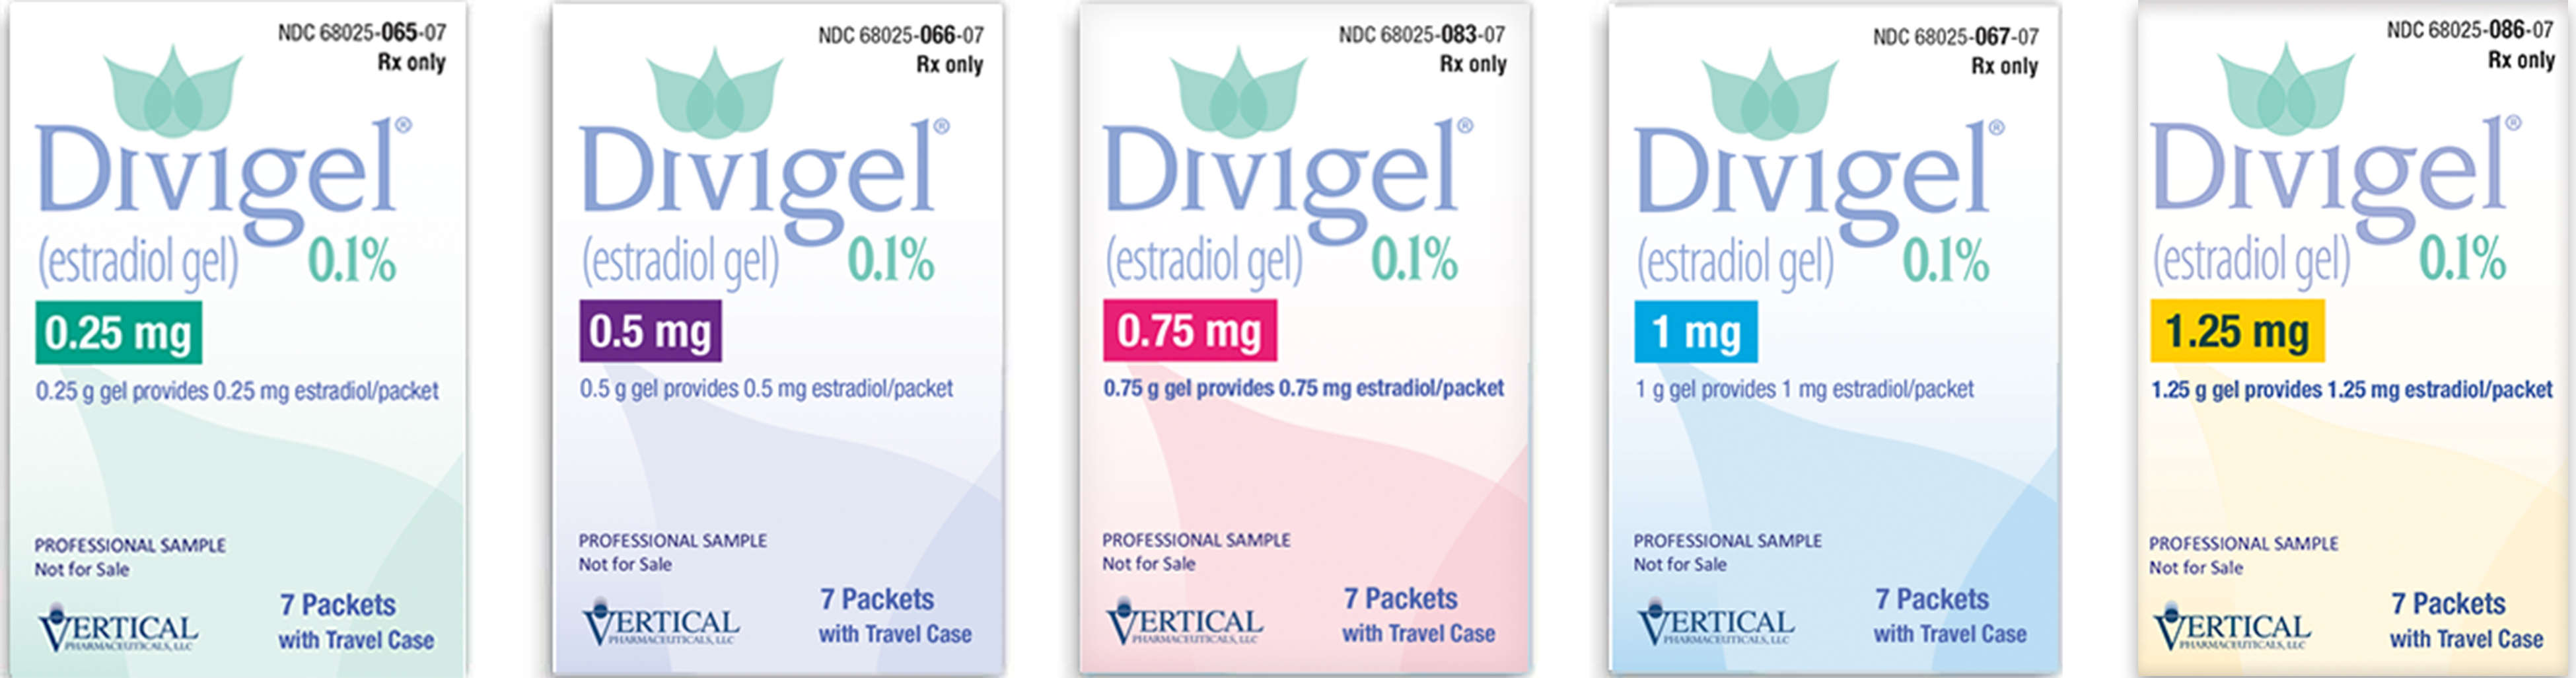 Divigel® comes in 0.25 mg, 0.5 mg, 0.75 mg, 1 mg, and 1.25 mg.